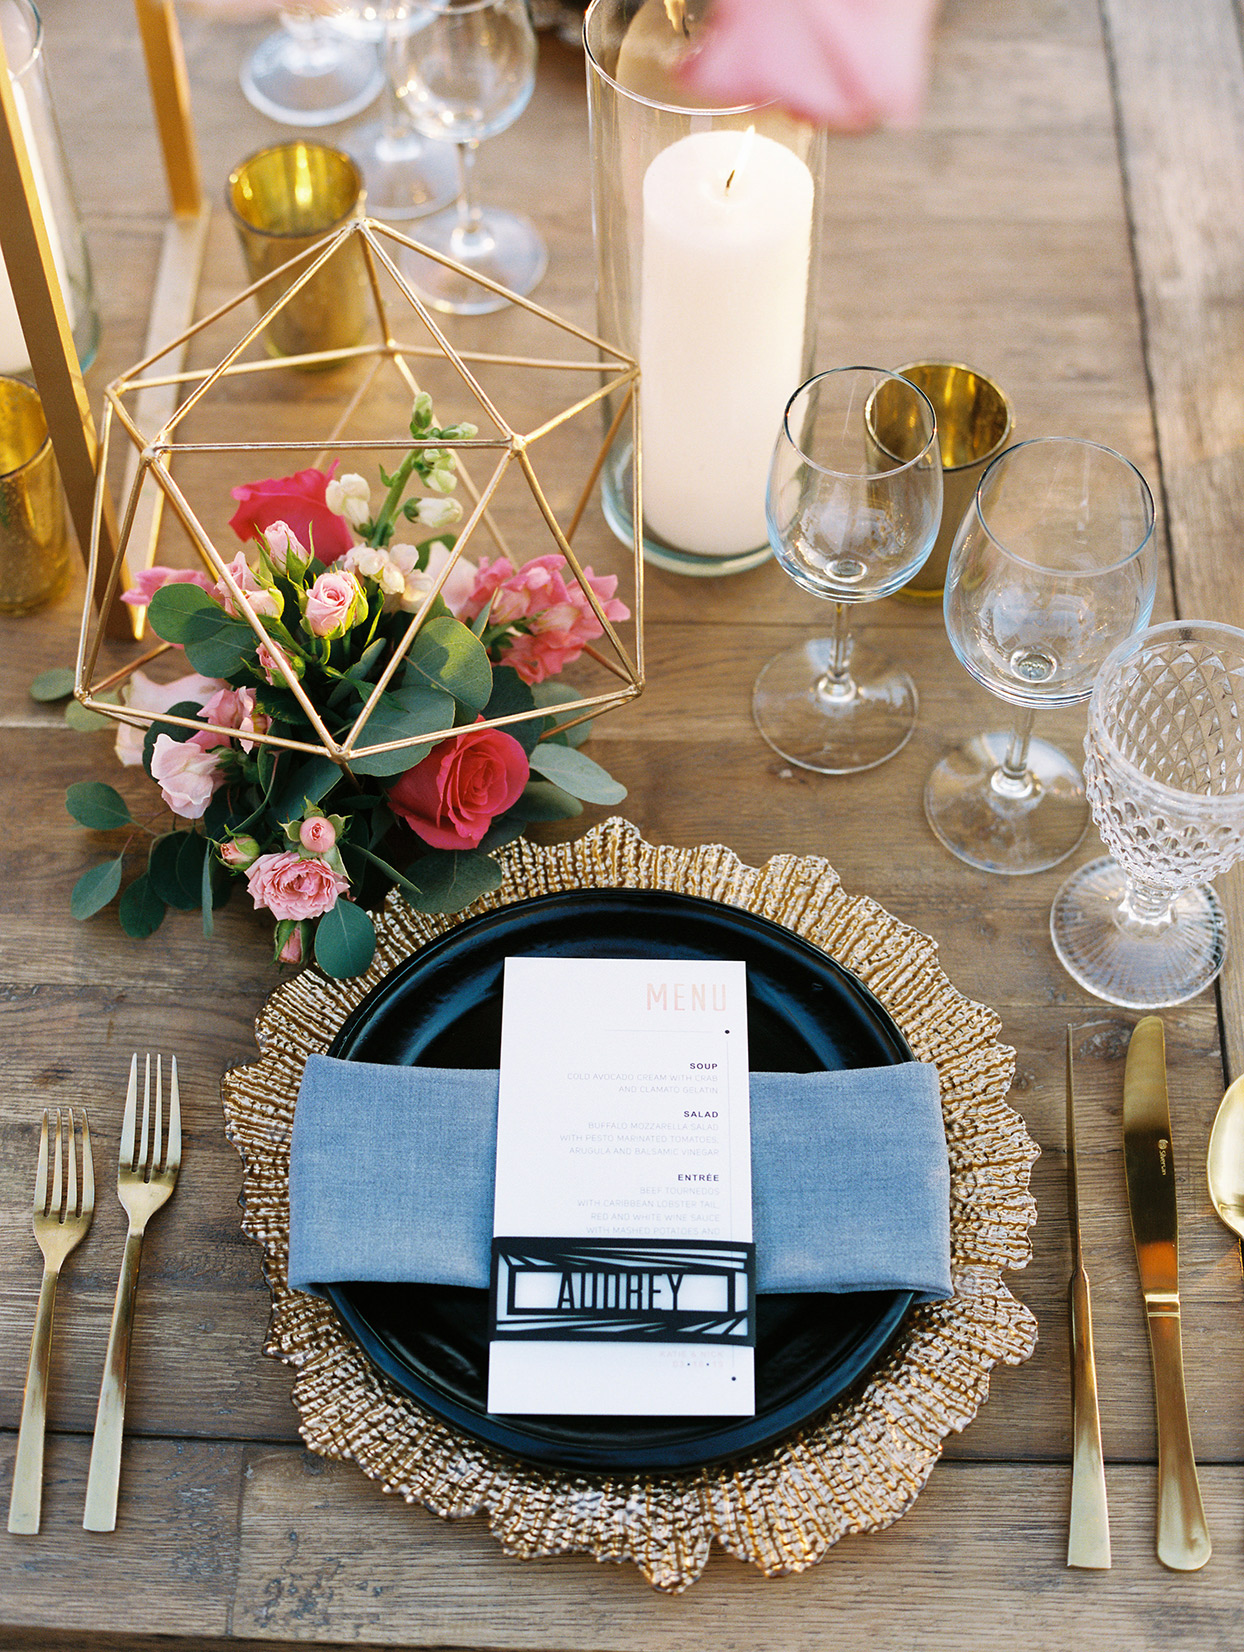 katie nick wedding place setting gold, blue, and pink